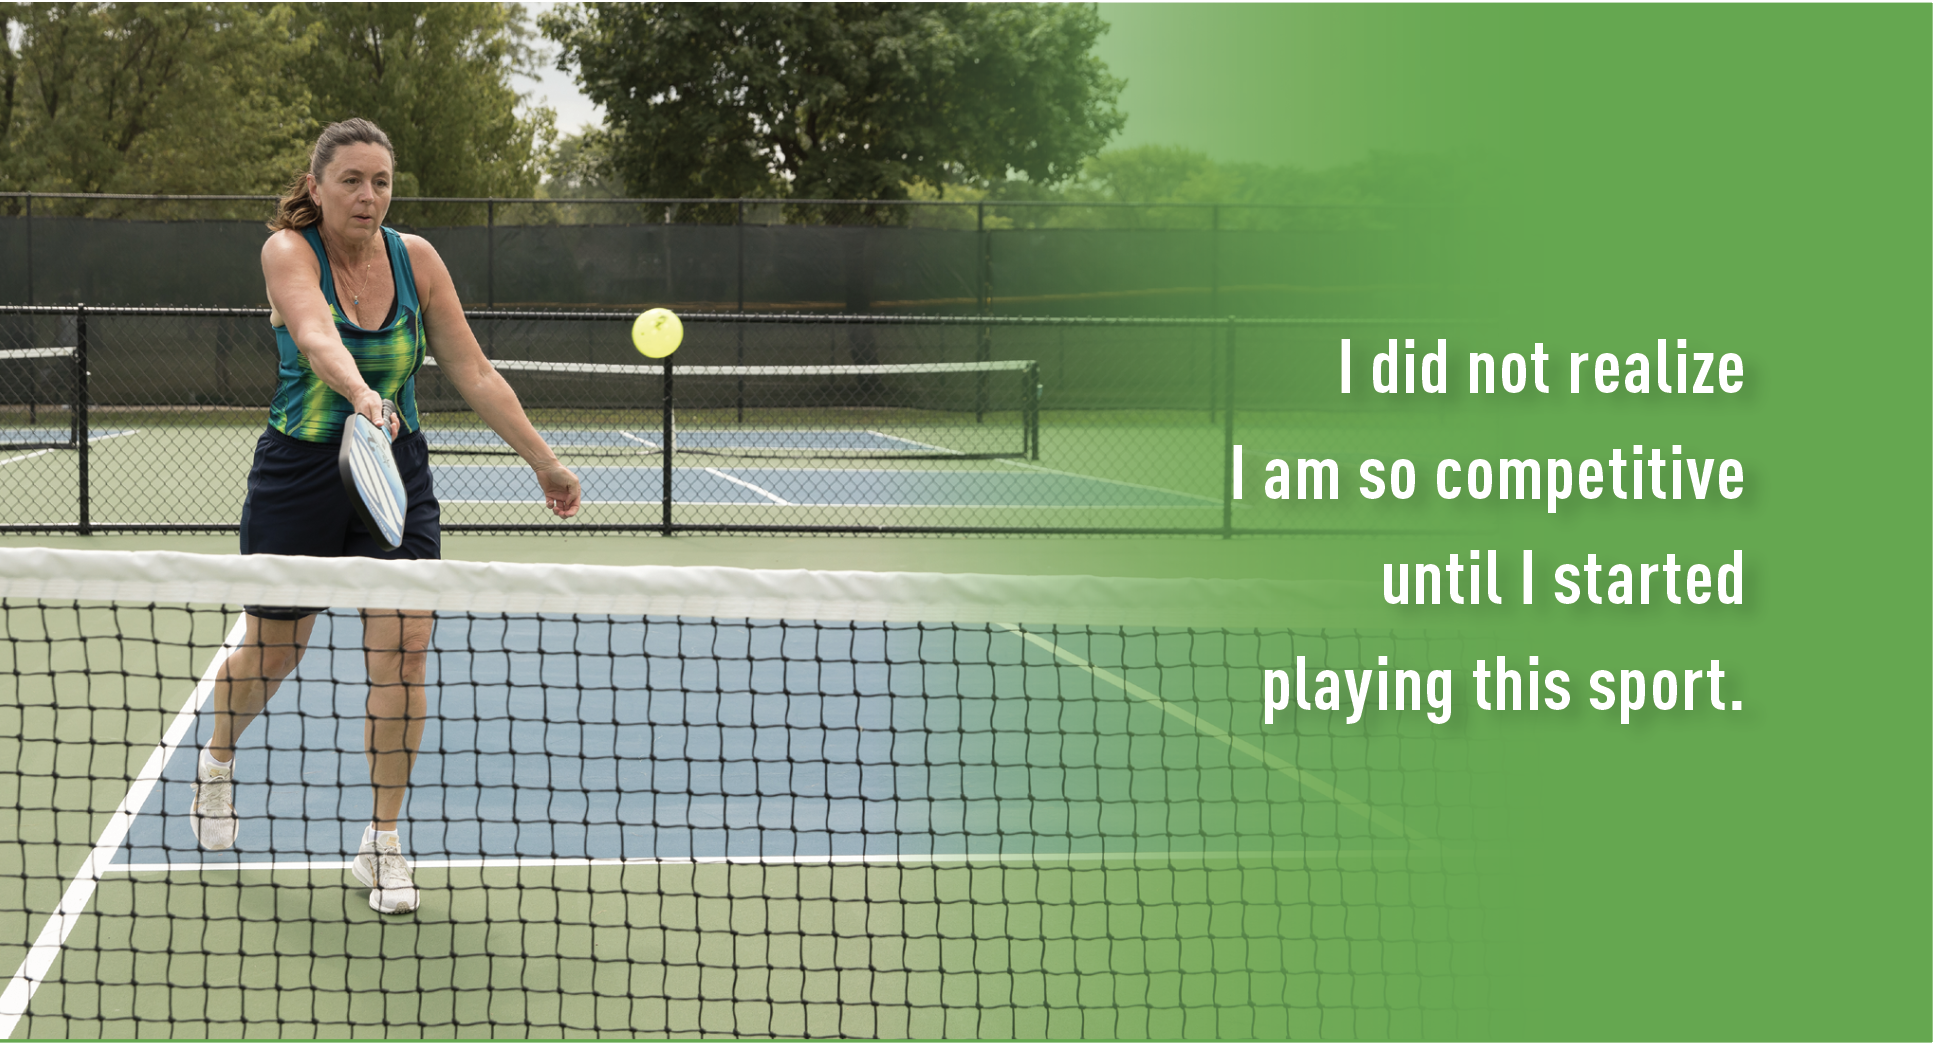 Quote:  I did not realize I am so competitive until I started playing this sport.